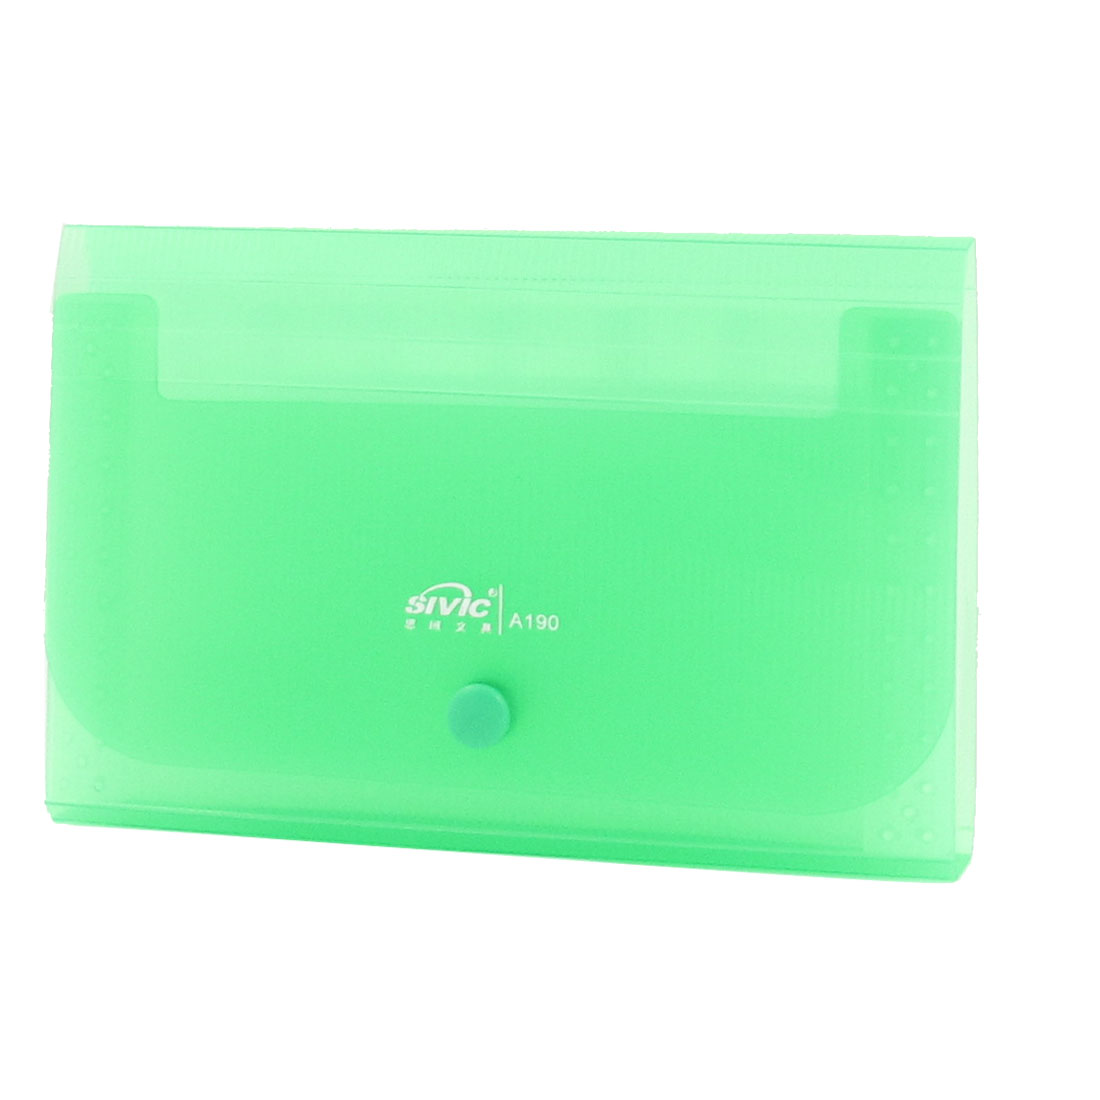 Press Stud Closure 13 Pockets Coupon Receipt Organizer Holder Green